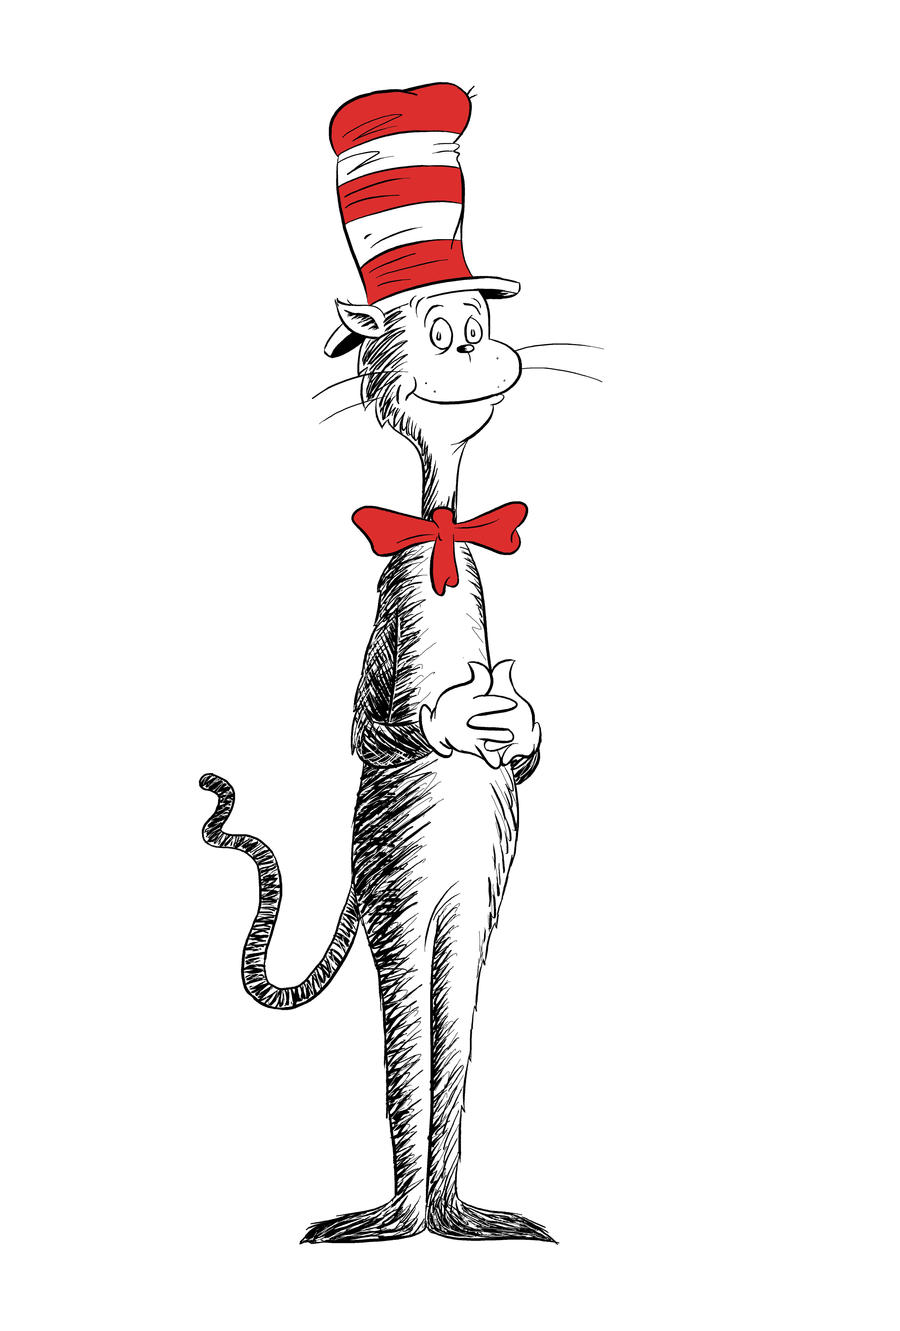 Cat in the Hat by aleksihca on DeviantArt